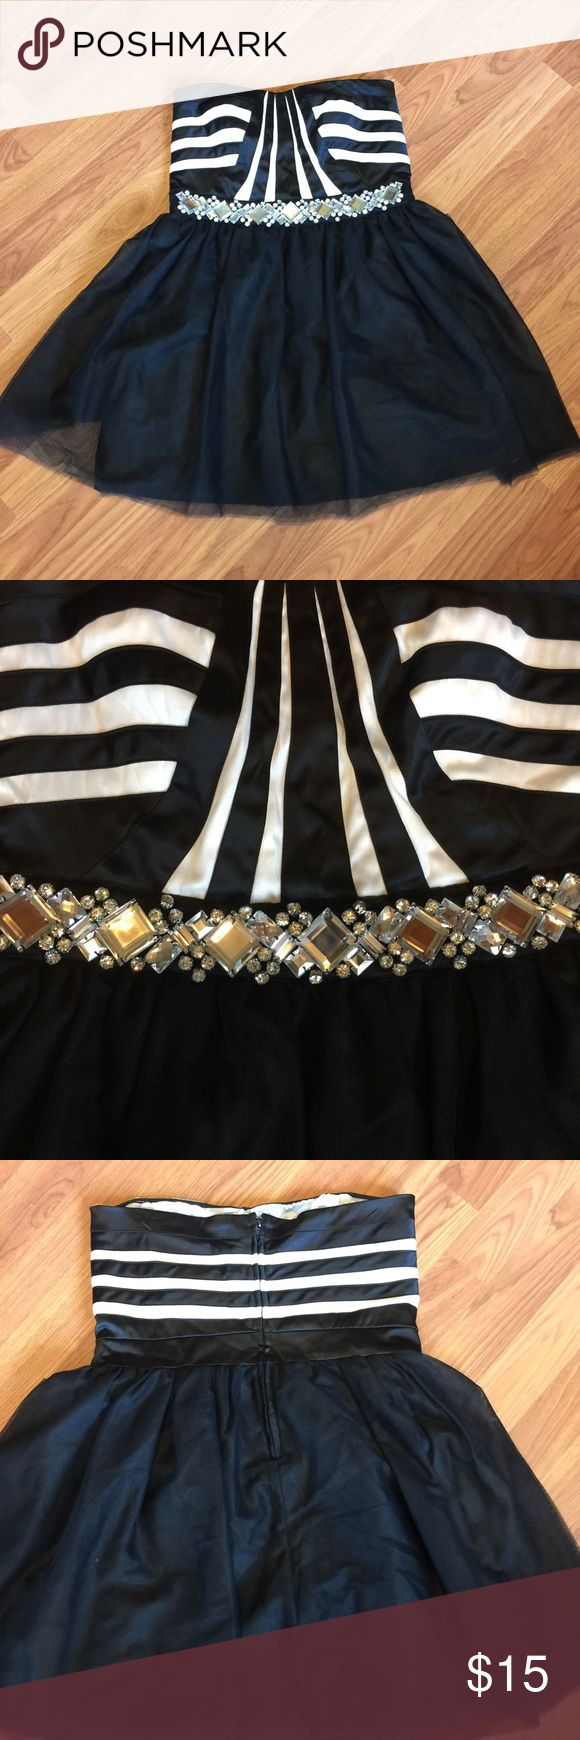 Black and White Formal Dress Black and white sweetheart dress. Tulle skirt with jewels at waist. Zip up back with rubbery-like piece that helps to hold it up. Couple of barely loose jewels but otherwise excellent condition condition love reign Dresses Prom